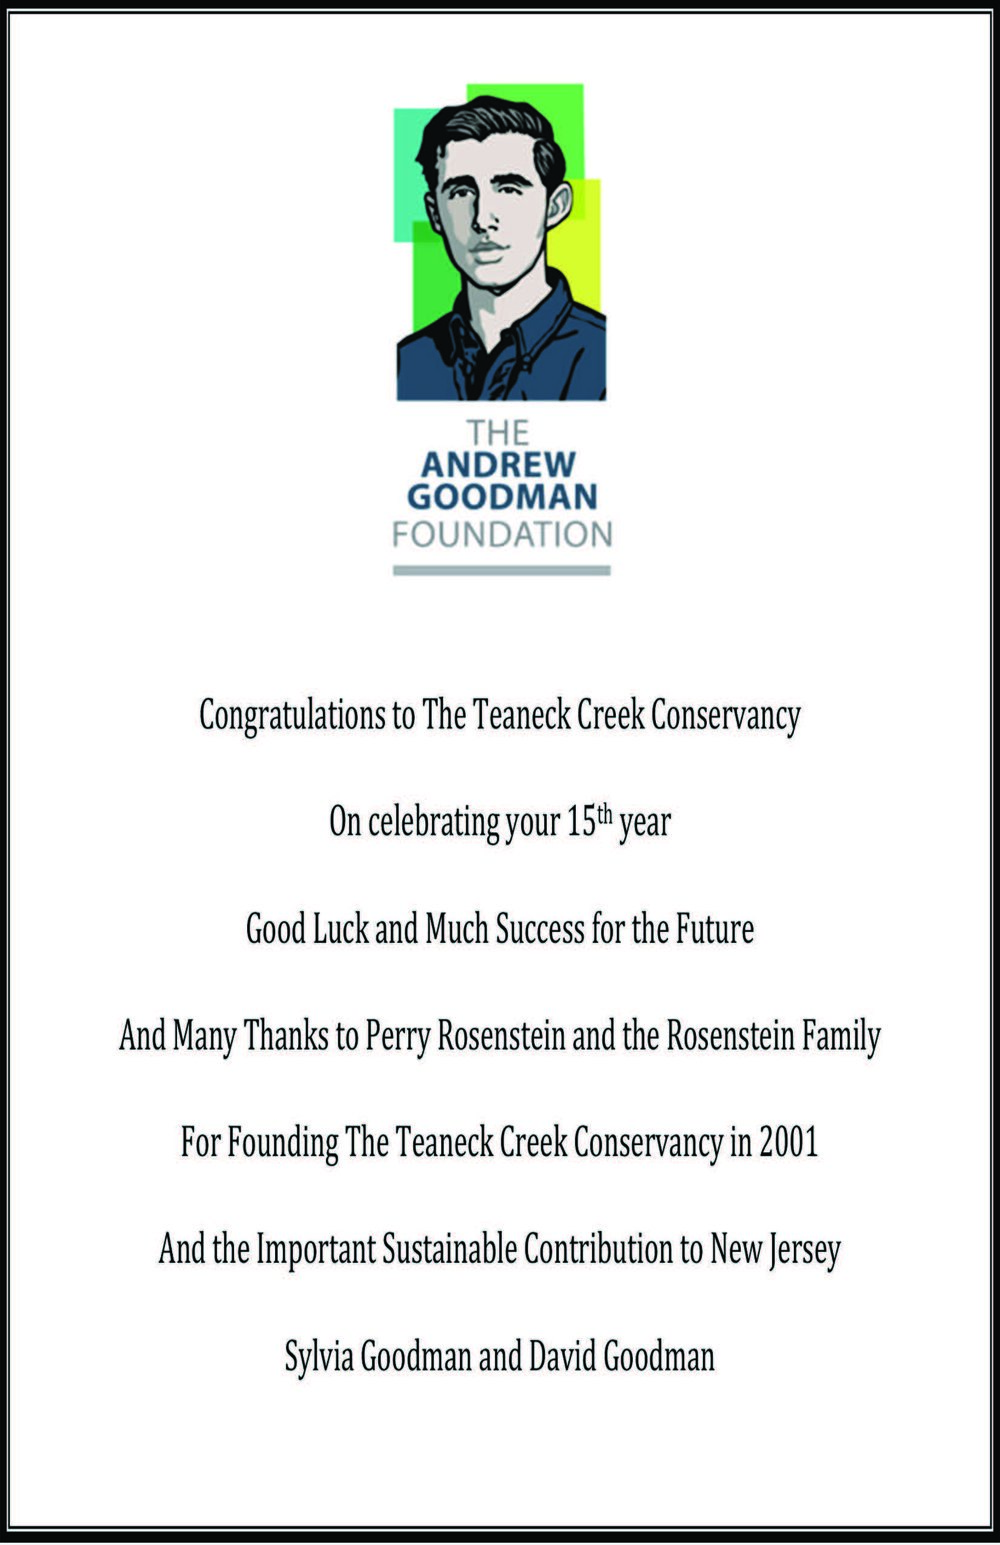 The Andrew Goodman Foundation